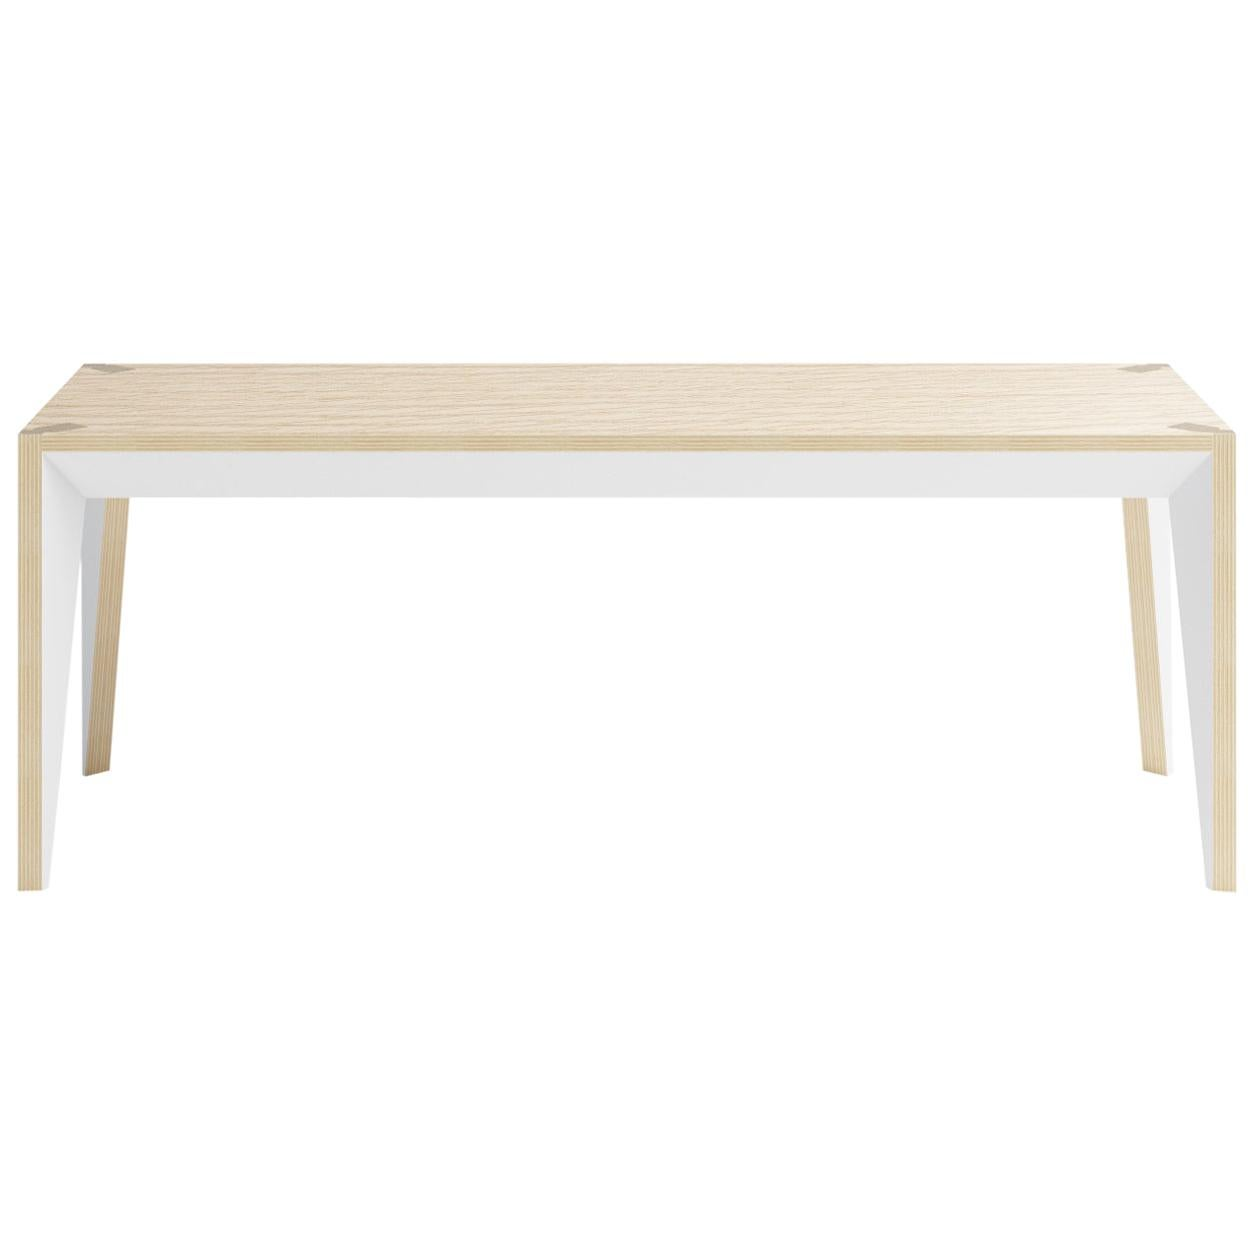 Oak Wood MiMi Bench White by Miduny, Made in Italy